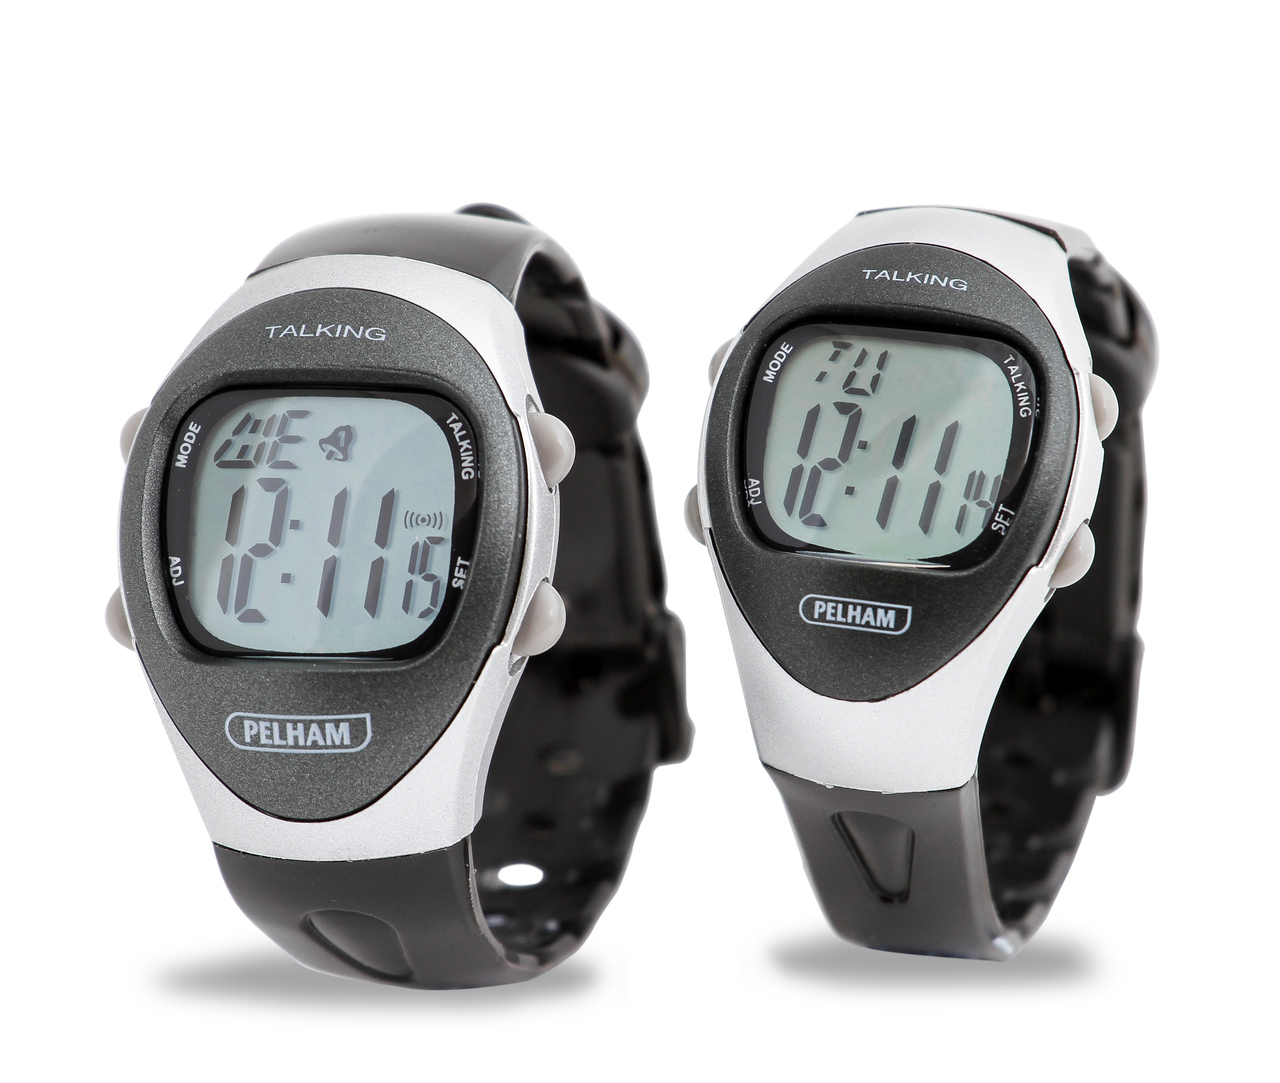 c74a549a70 Digital Talking Watch with Alarm - Small & Large